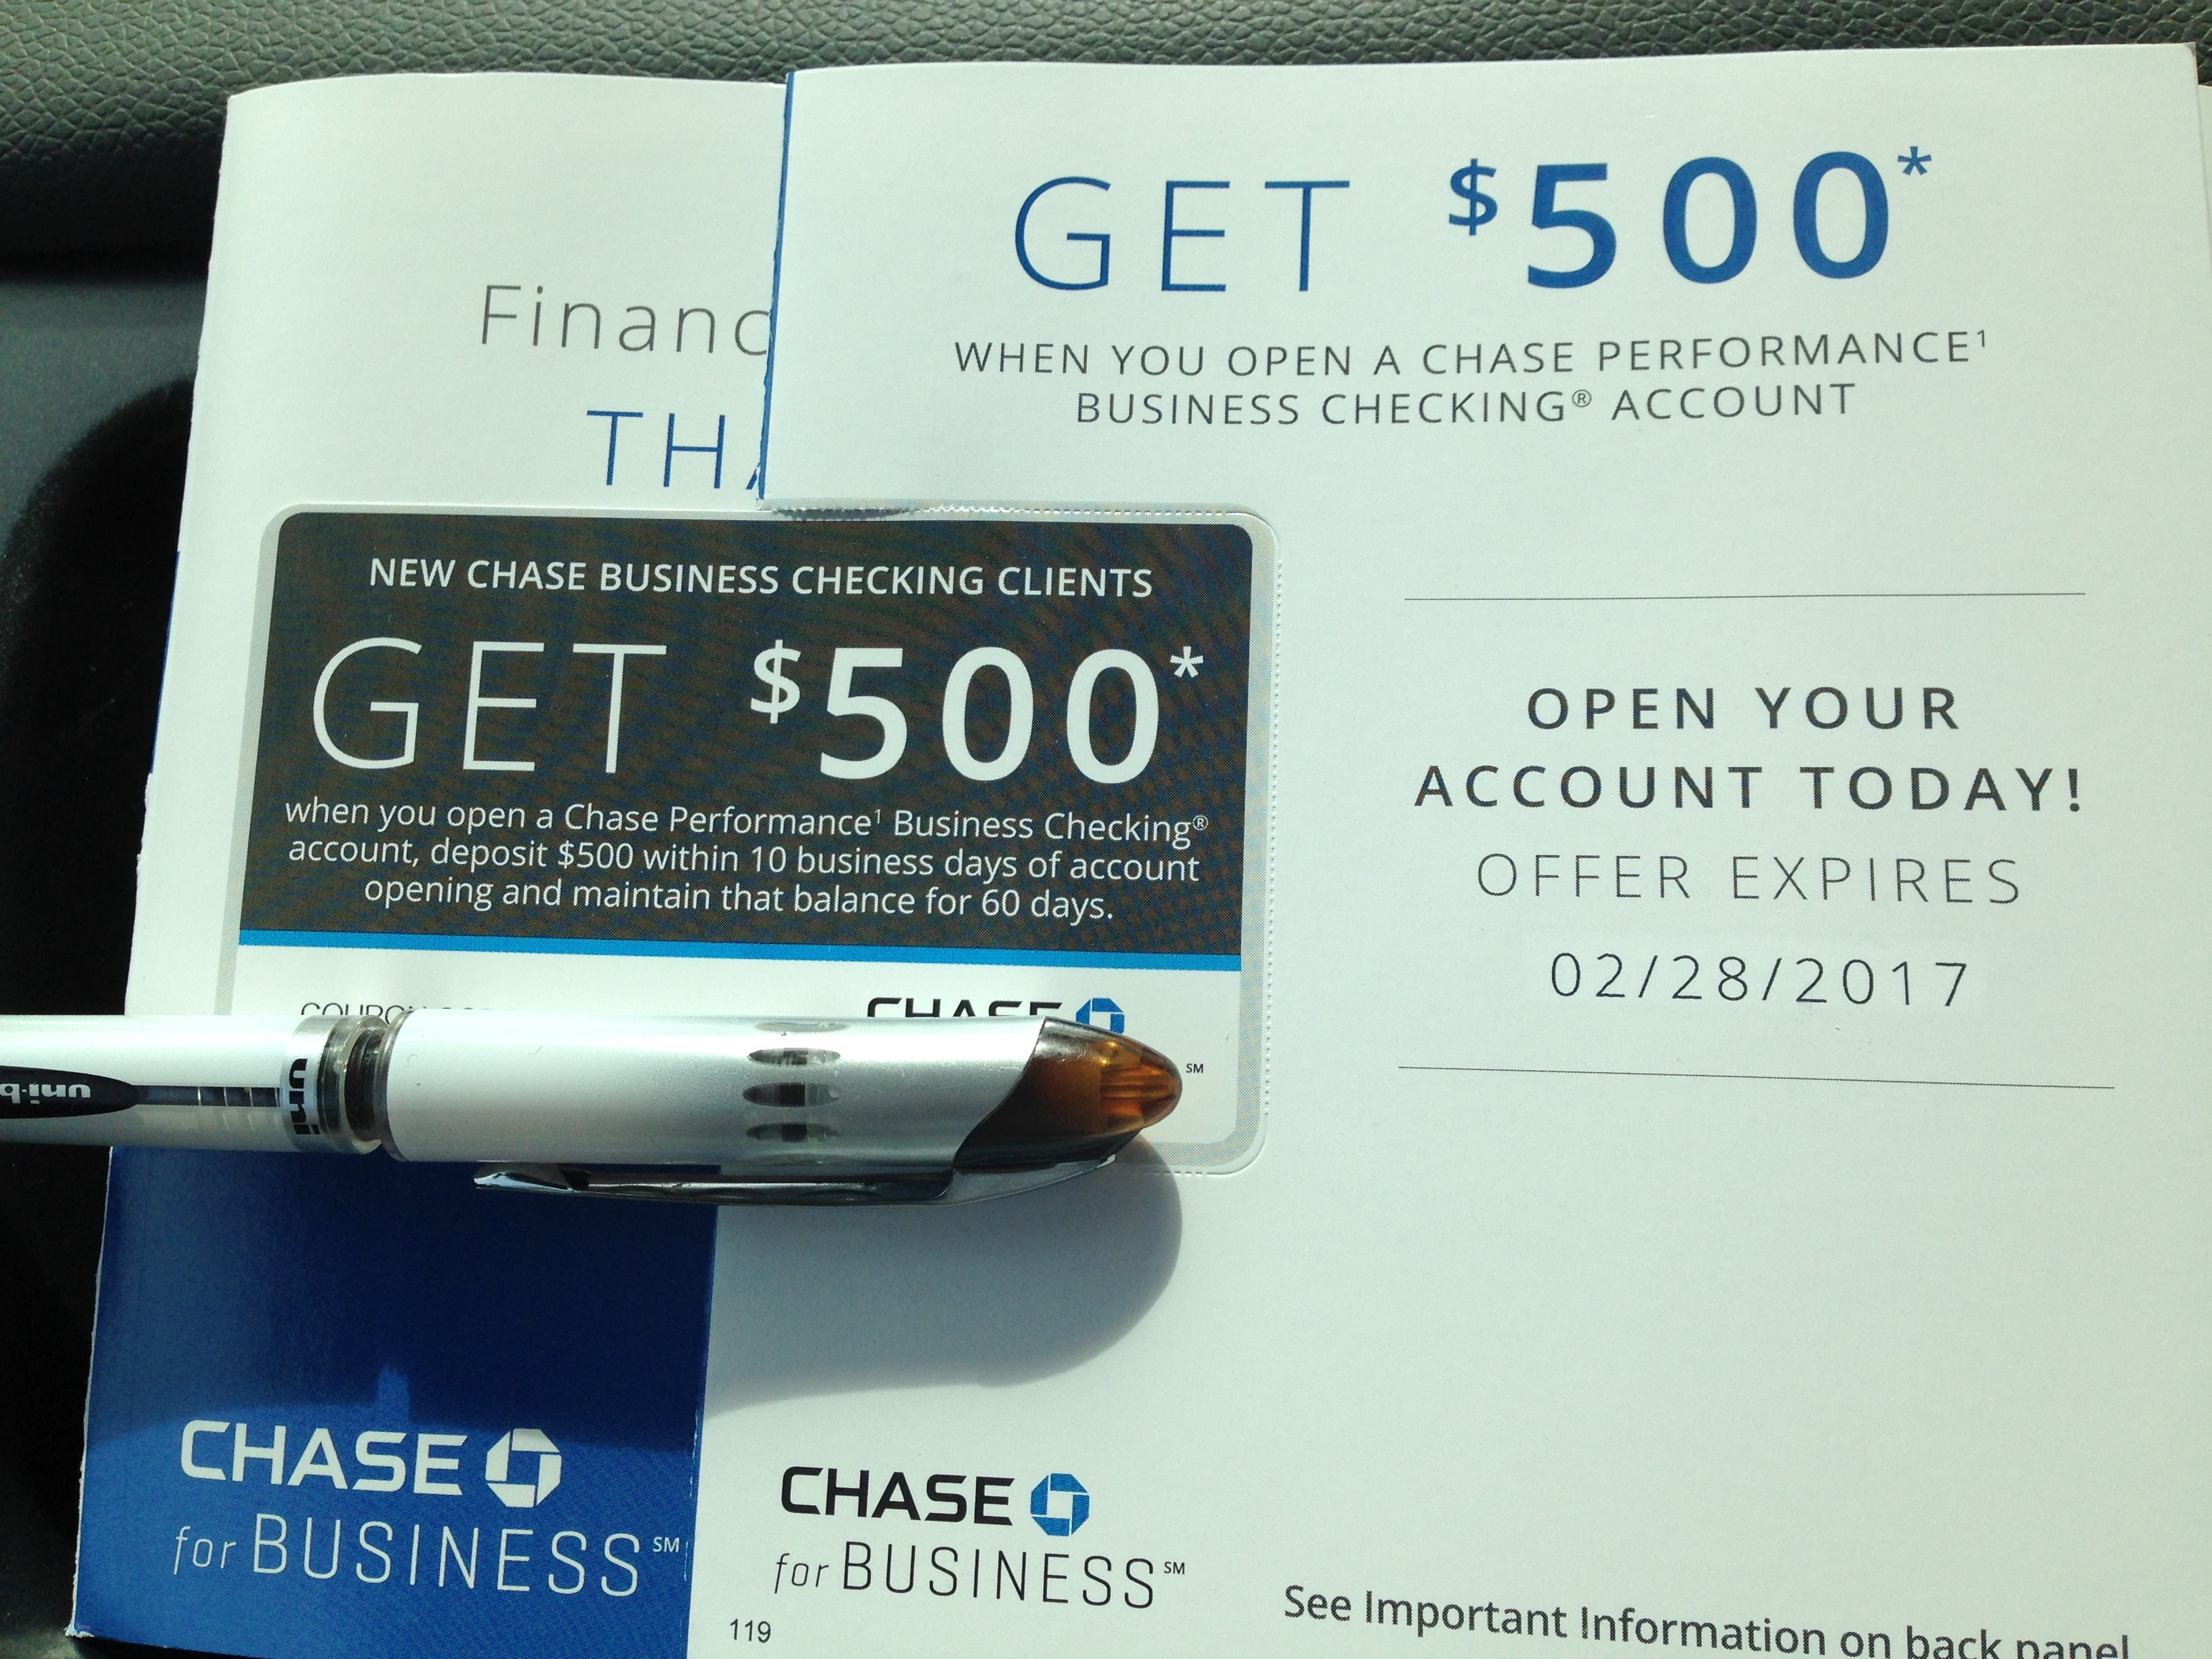 Chase Business checking $500 free when depositing of $500